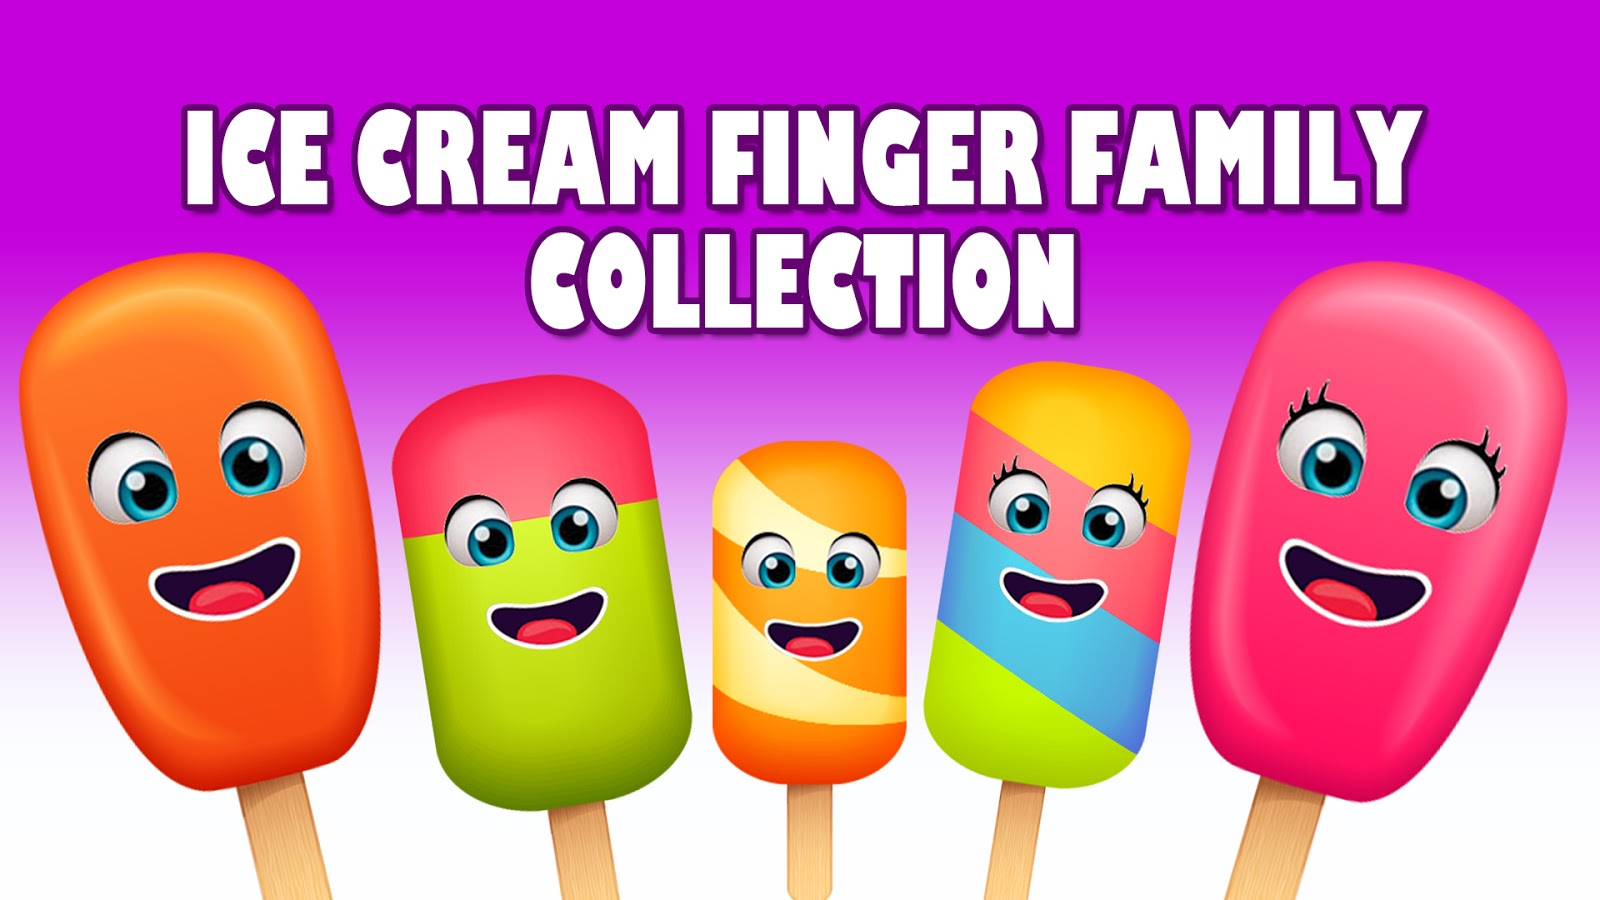 Finger family collection 7 finger family songs - True Frozen Custard Is A Very Dense Dessert Soft Serve Ice Creams May Have An Overrun As Large As 100 Meaning Half Of The Final Product Is Composed Of